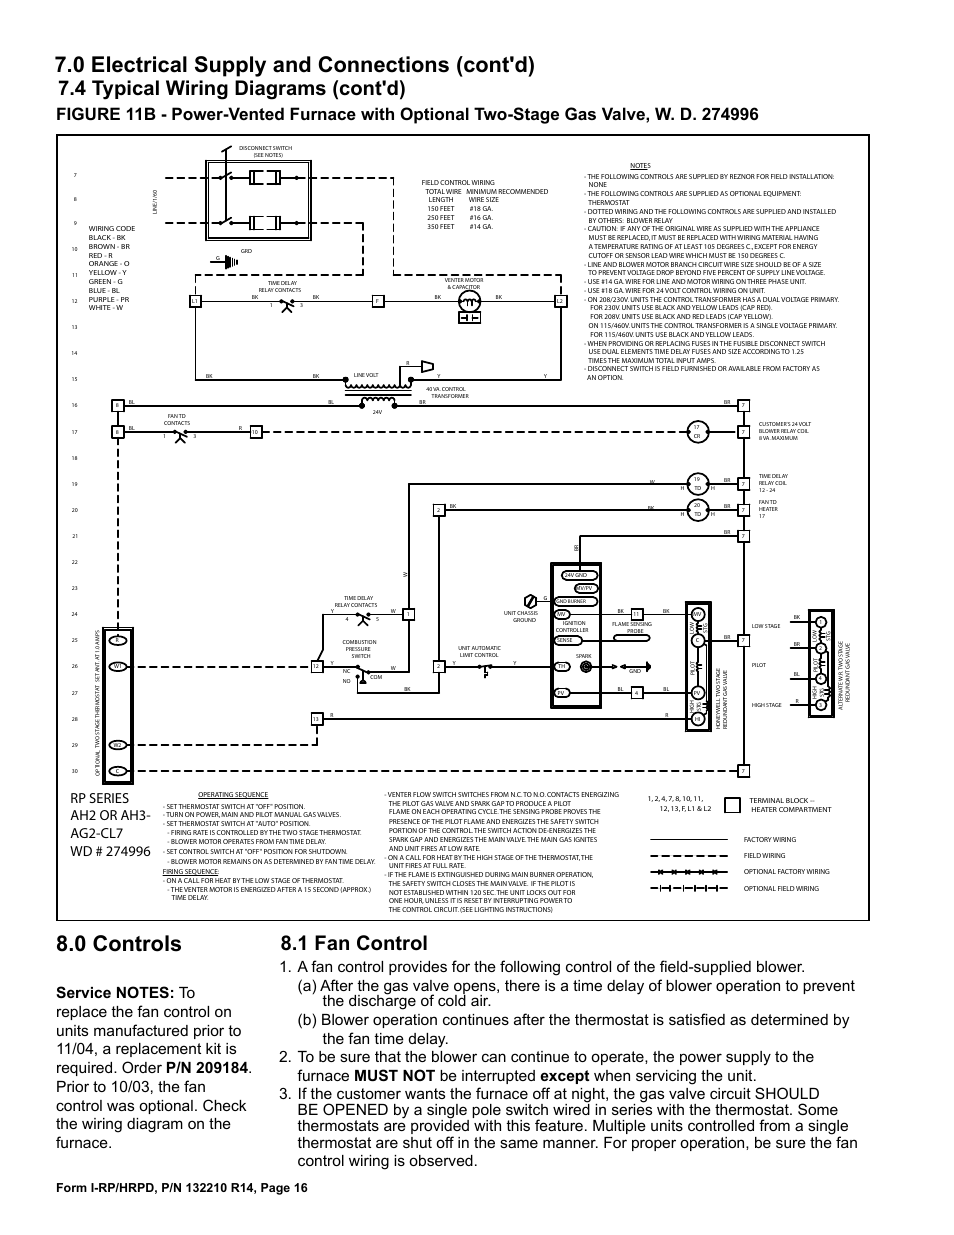 1 fan control 4 typical wiring diagrams cont d reznor hrpd 1 fan control 4 typical wiring diagrams cont d reznor hrpd